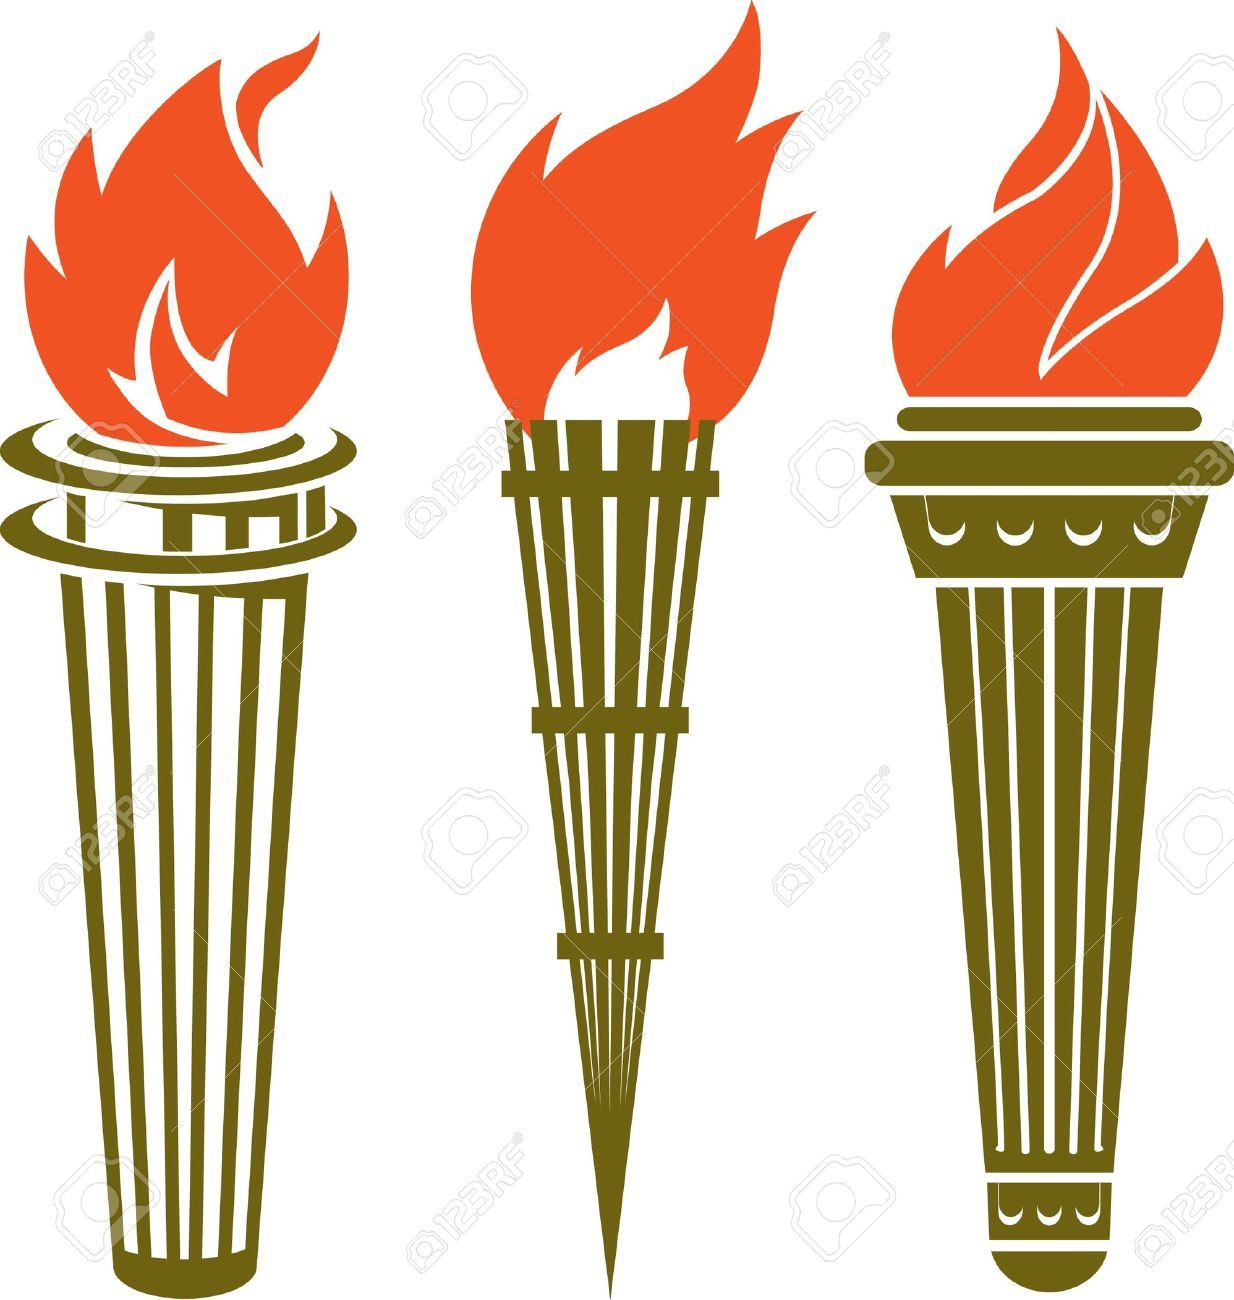 Torch Stock Vector Illustration And Royalty Free Torch.